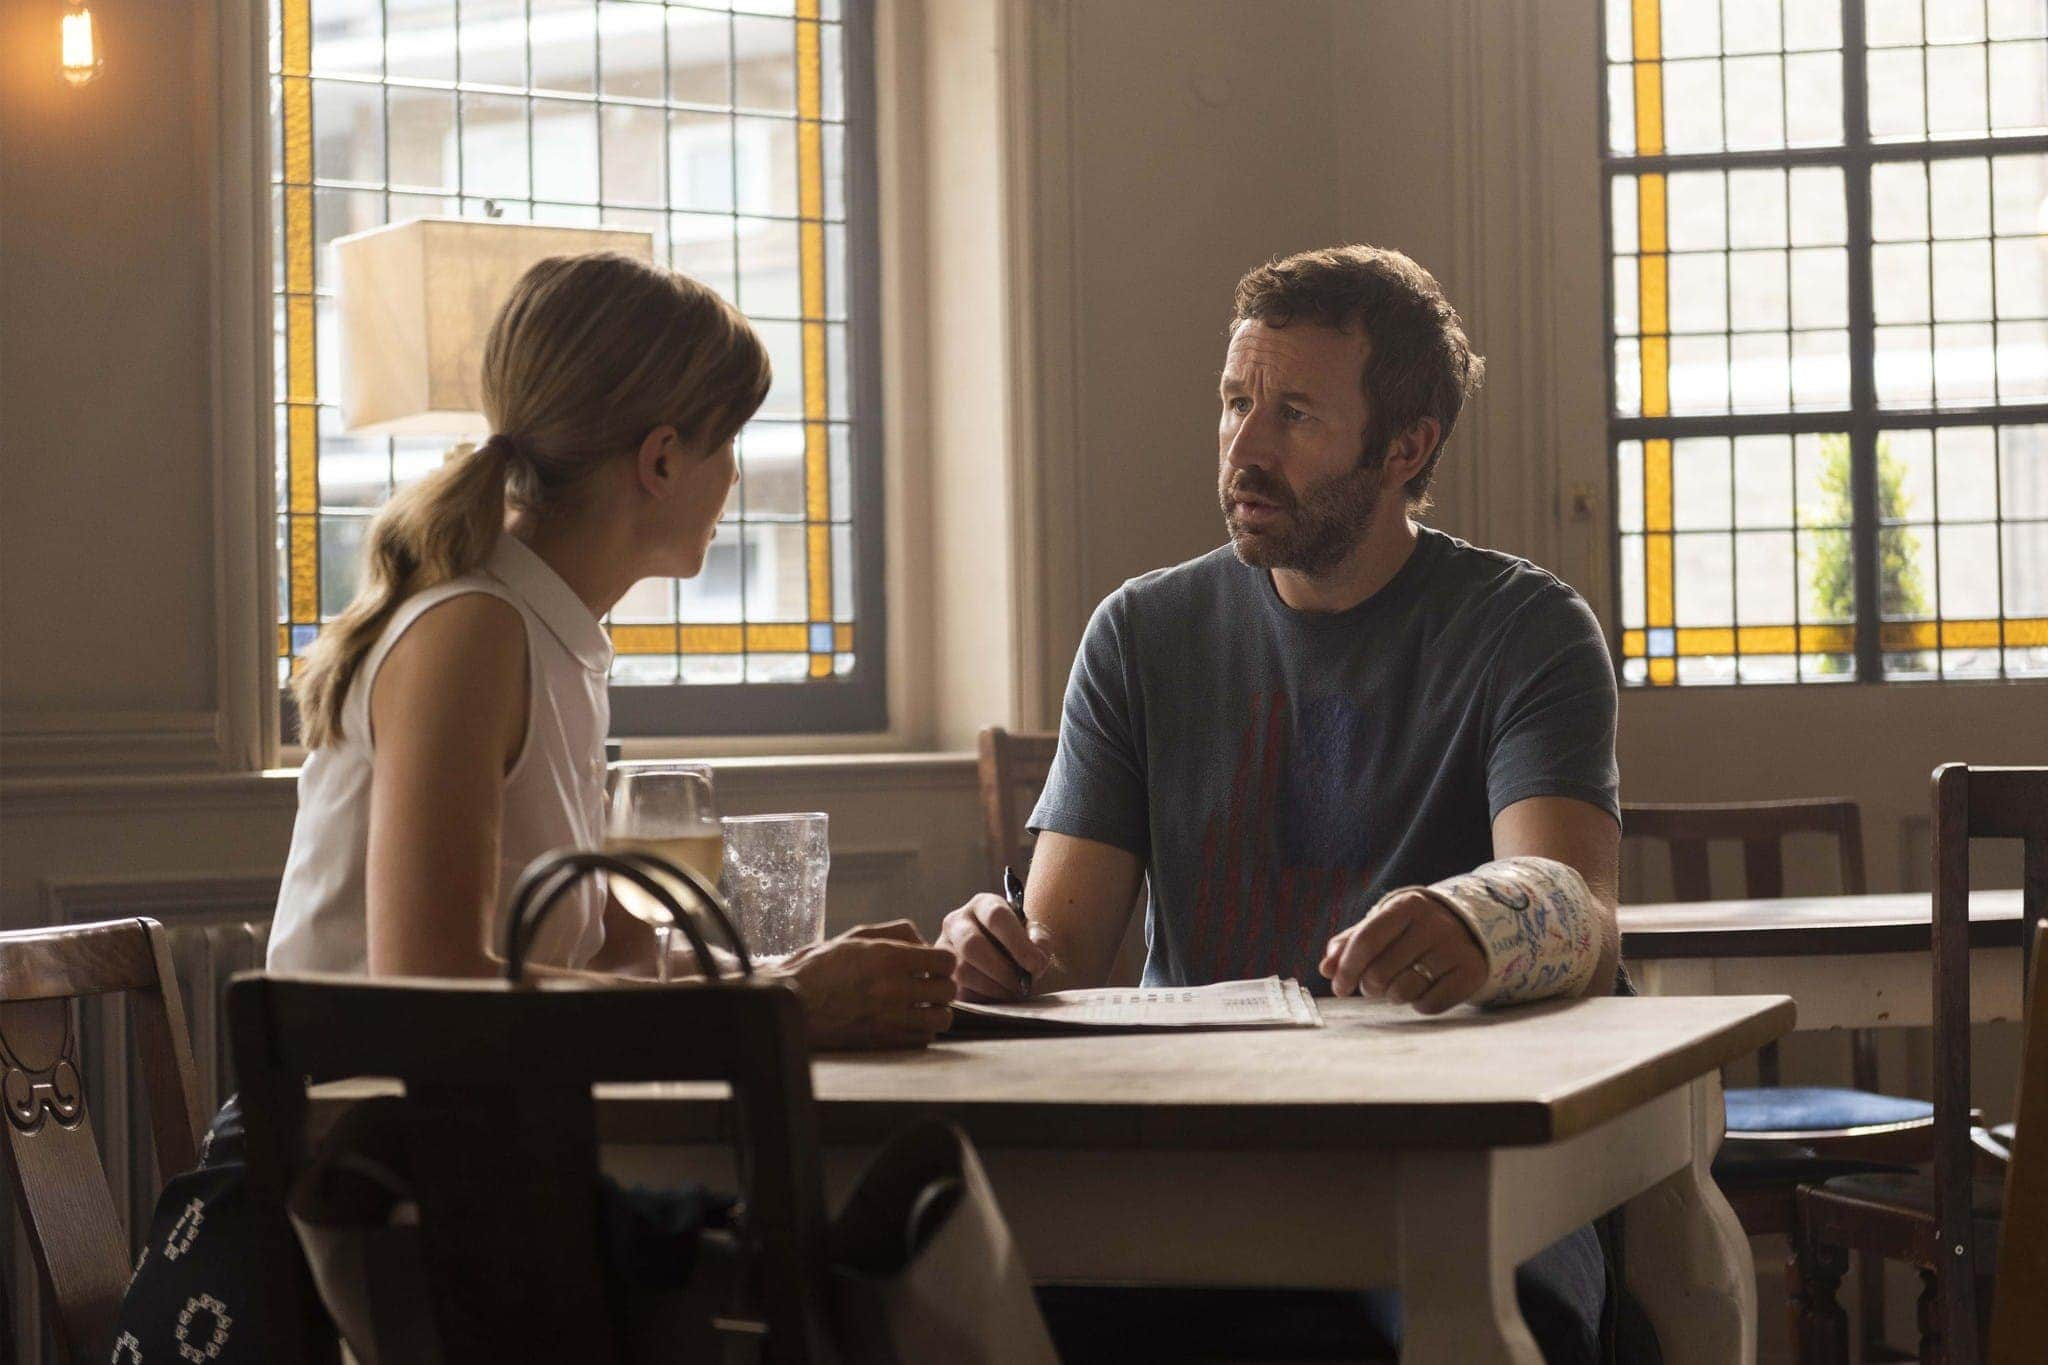 Rosamund Pike as Louise, Chris O'Dowd as Tom - State of the Union _ Season 1, Episode 4 - Photo Credit: Parisatag Hizadeh/Confession Films/SundanceTV